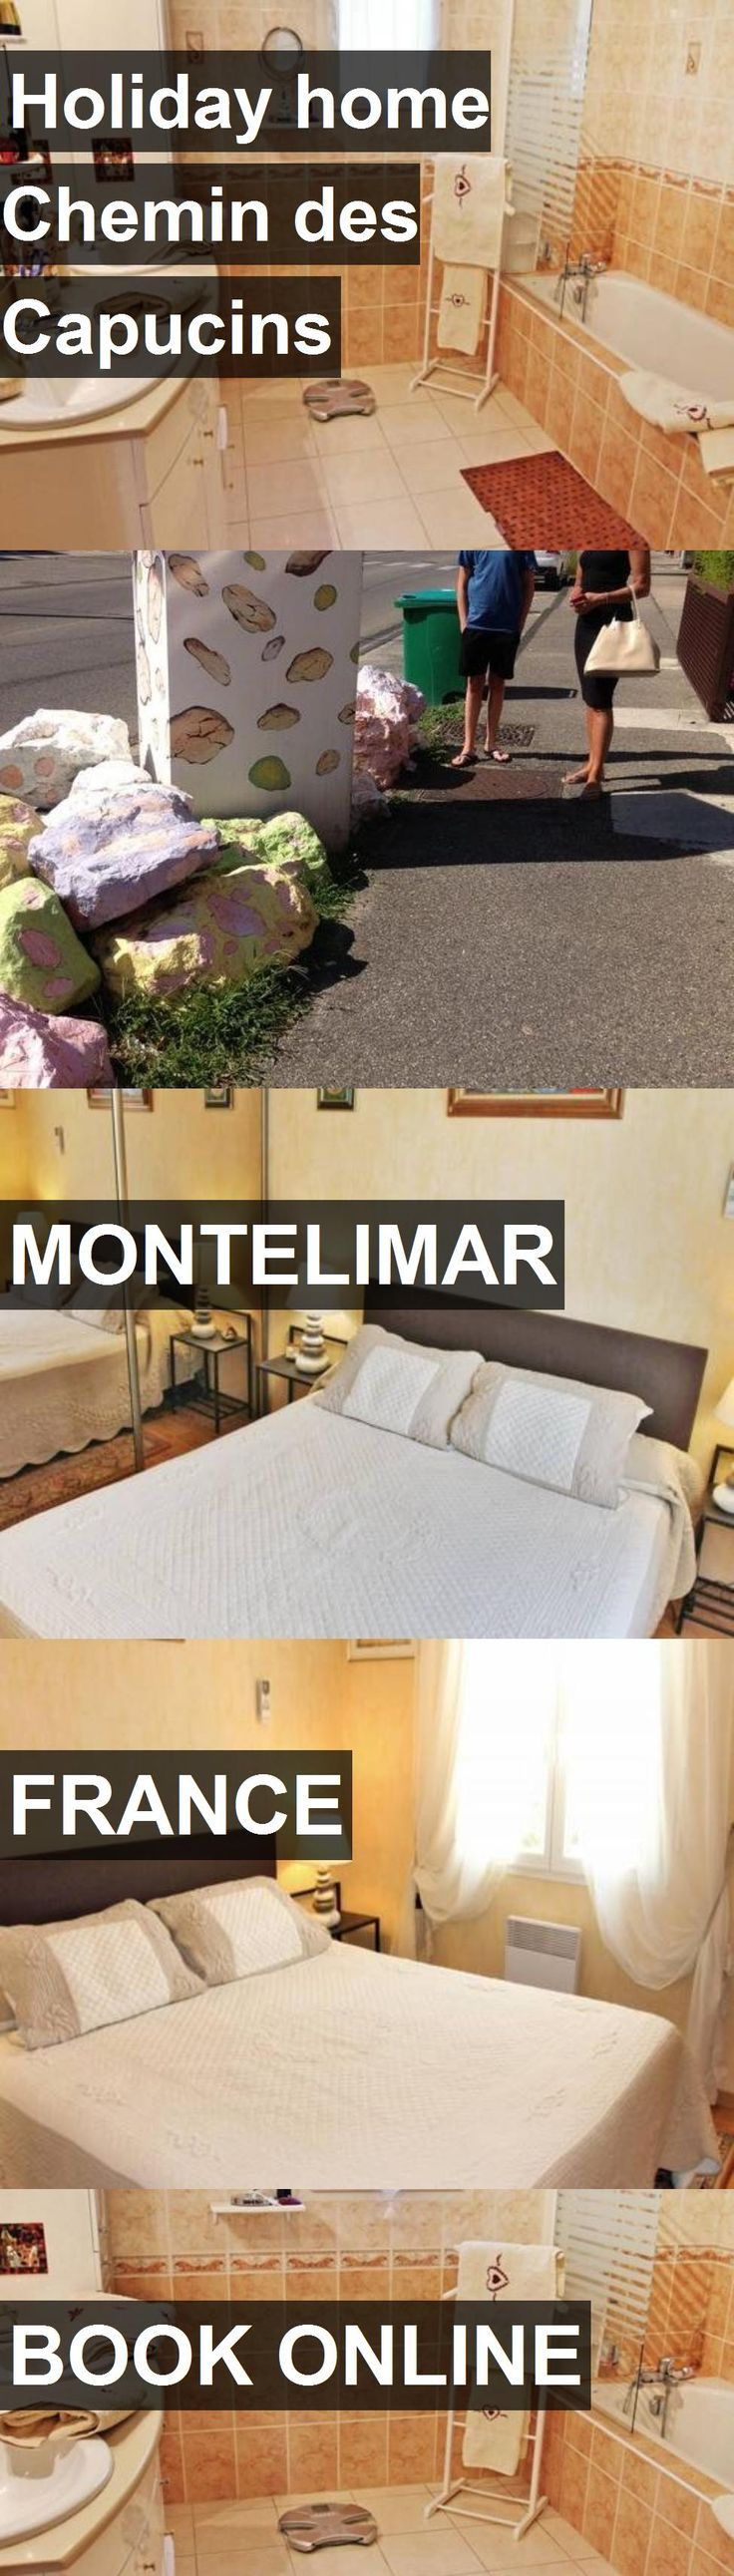 Hotel Holiday home Chemin des Capucins in Montelimar, France. For more information, photos, reviews and best prices please follow the link. #France #Montelimar #travel #vacation #hotel